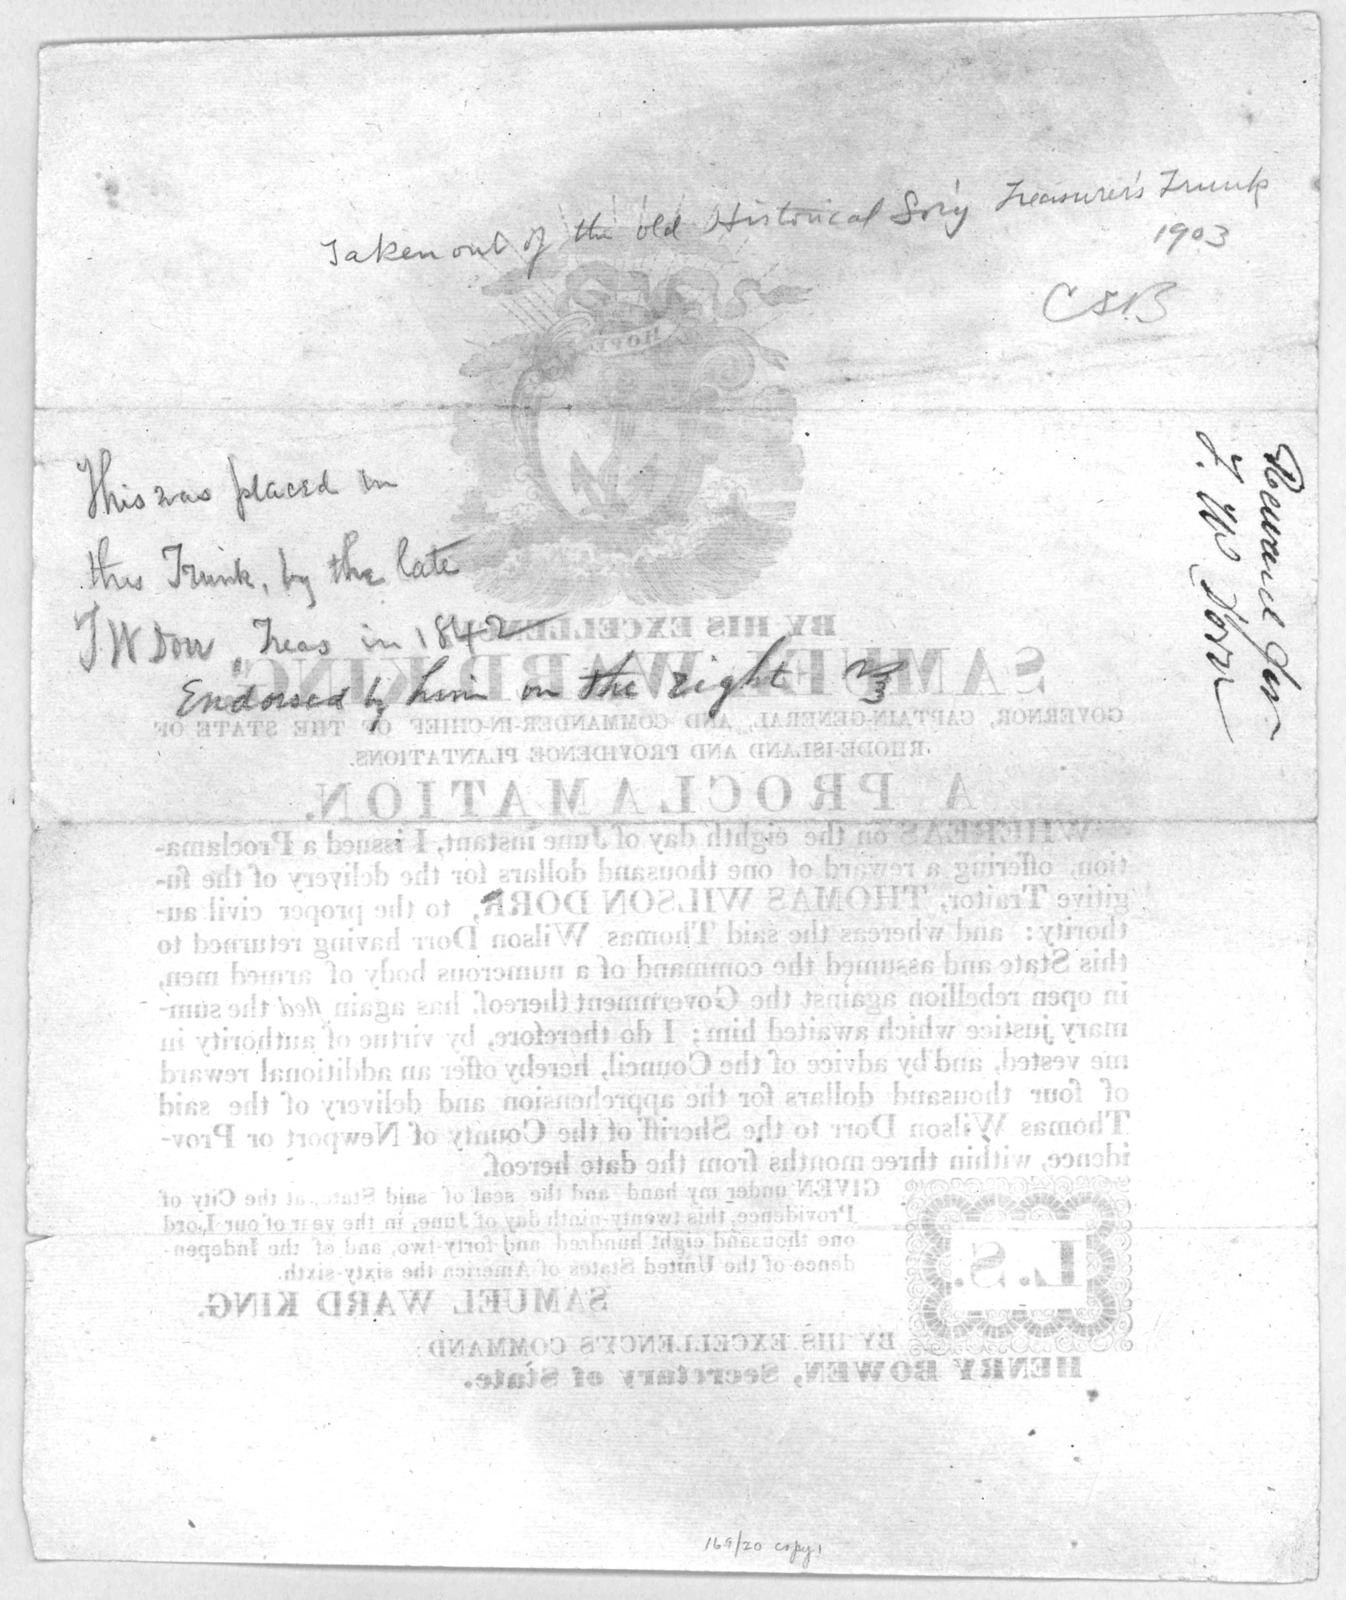 By His Excellency, Governor ... a proclamation. Whereas on the eighth day of June instant, I issued a proclamation, offering a reward of one thousand dollars for the delivery of the fugitive traitor Thomas Wilson Dorr ... hereby offer an additio